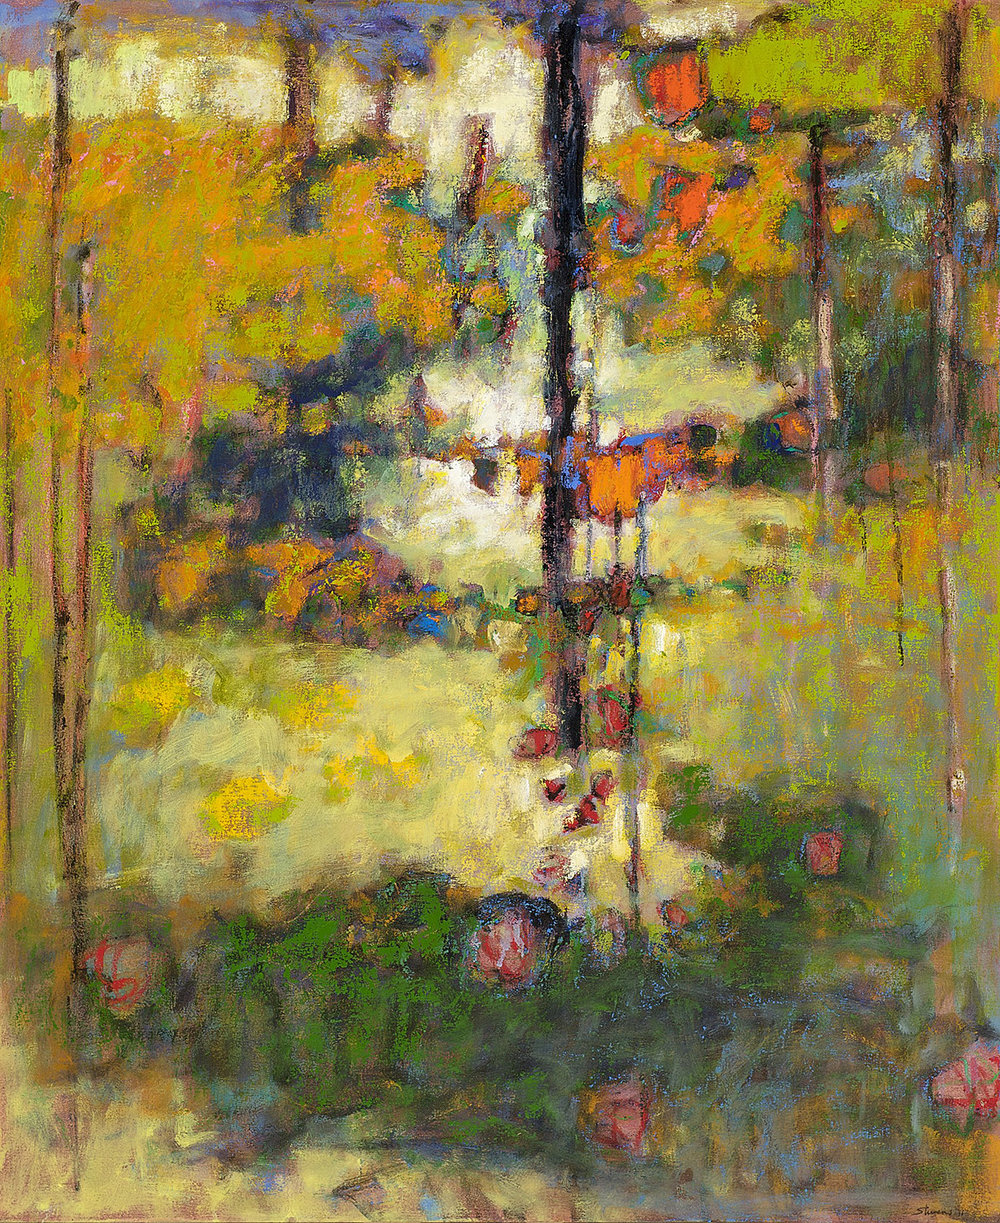 Shaping the Unknown   | oil on canvas | 44 x 36"